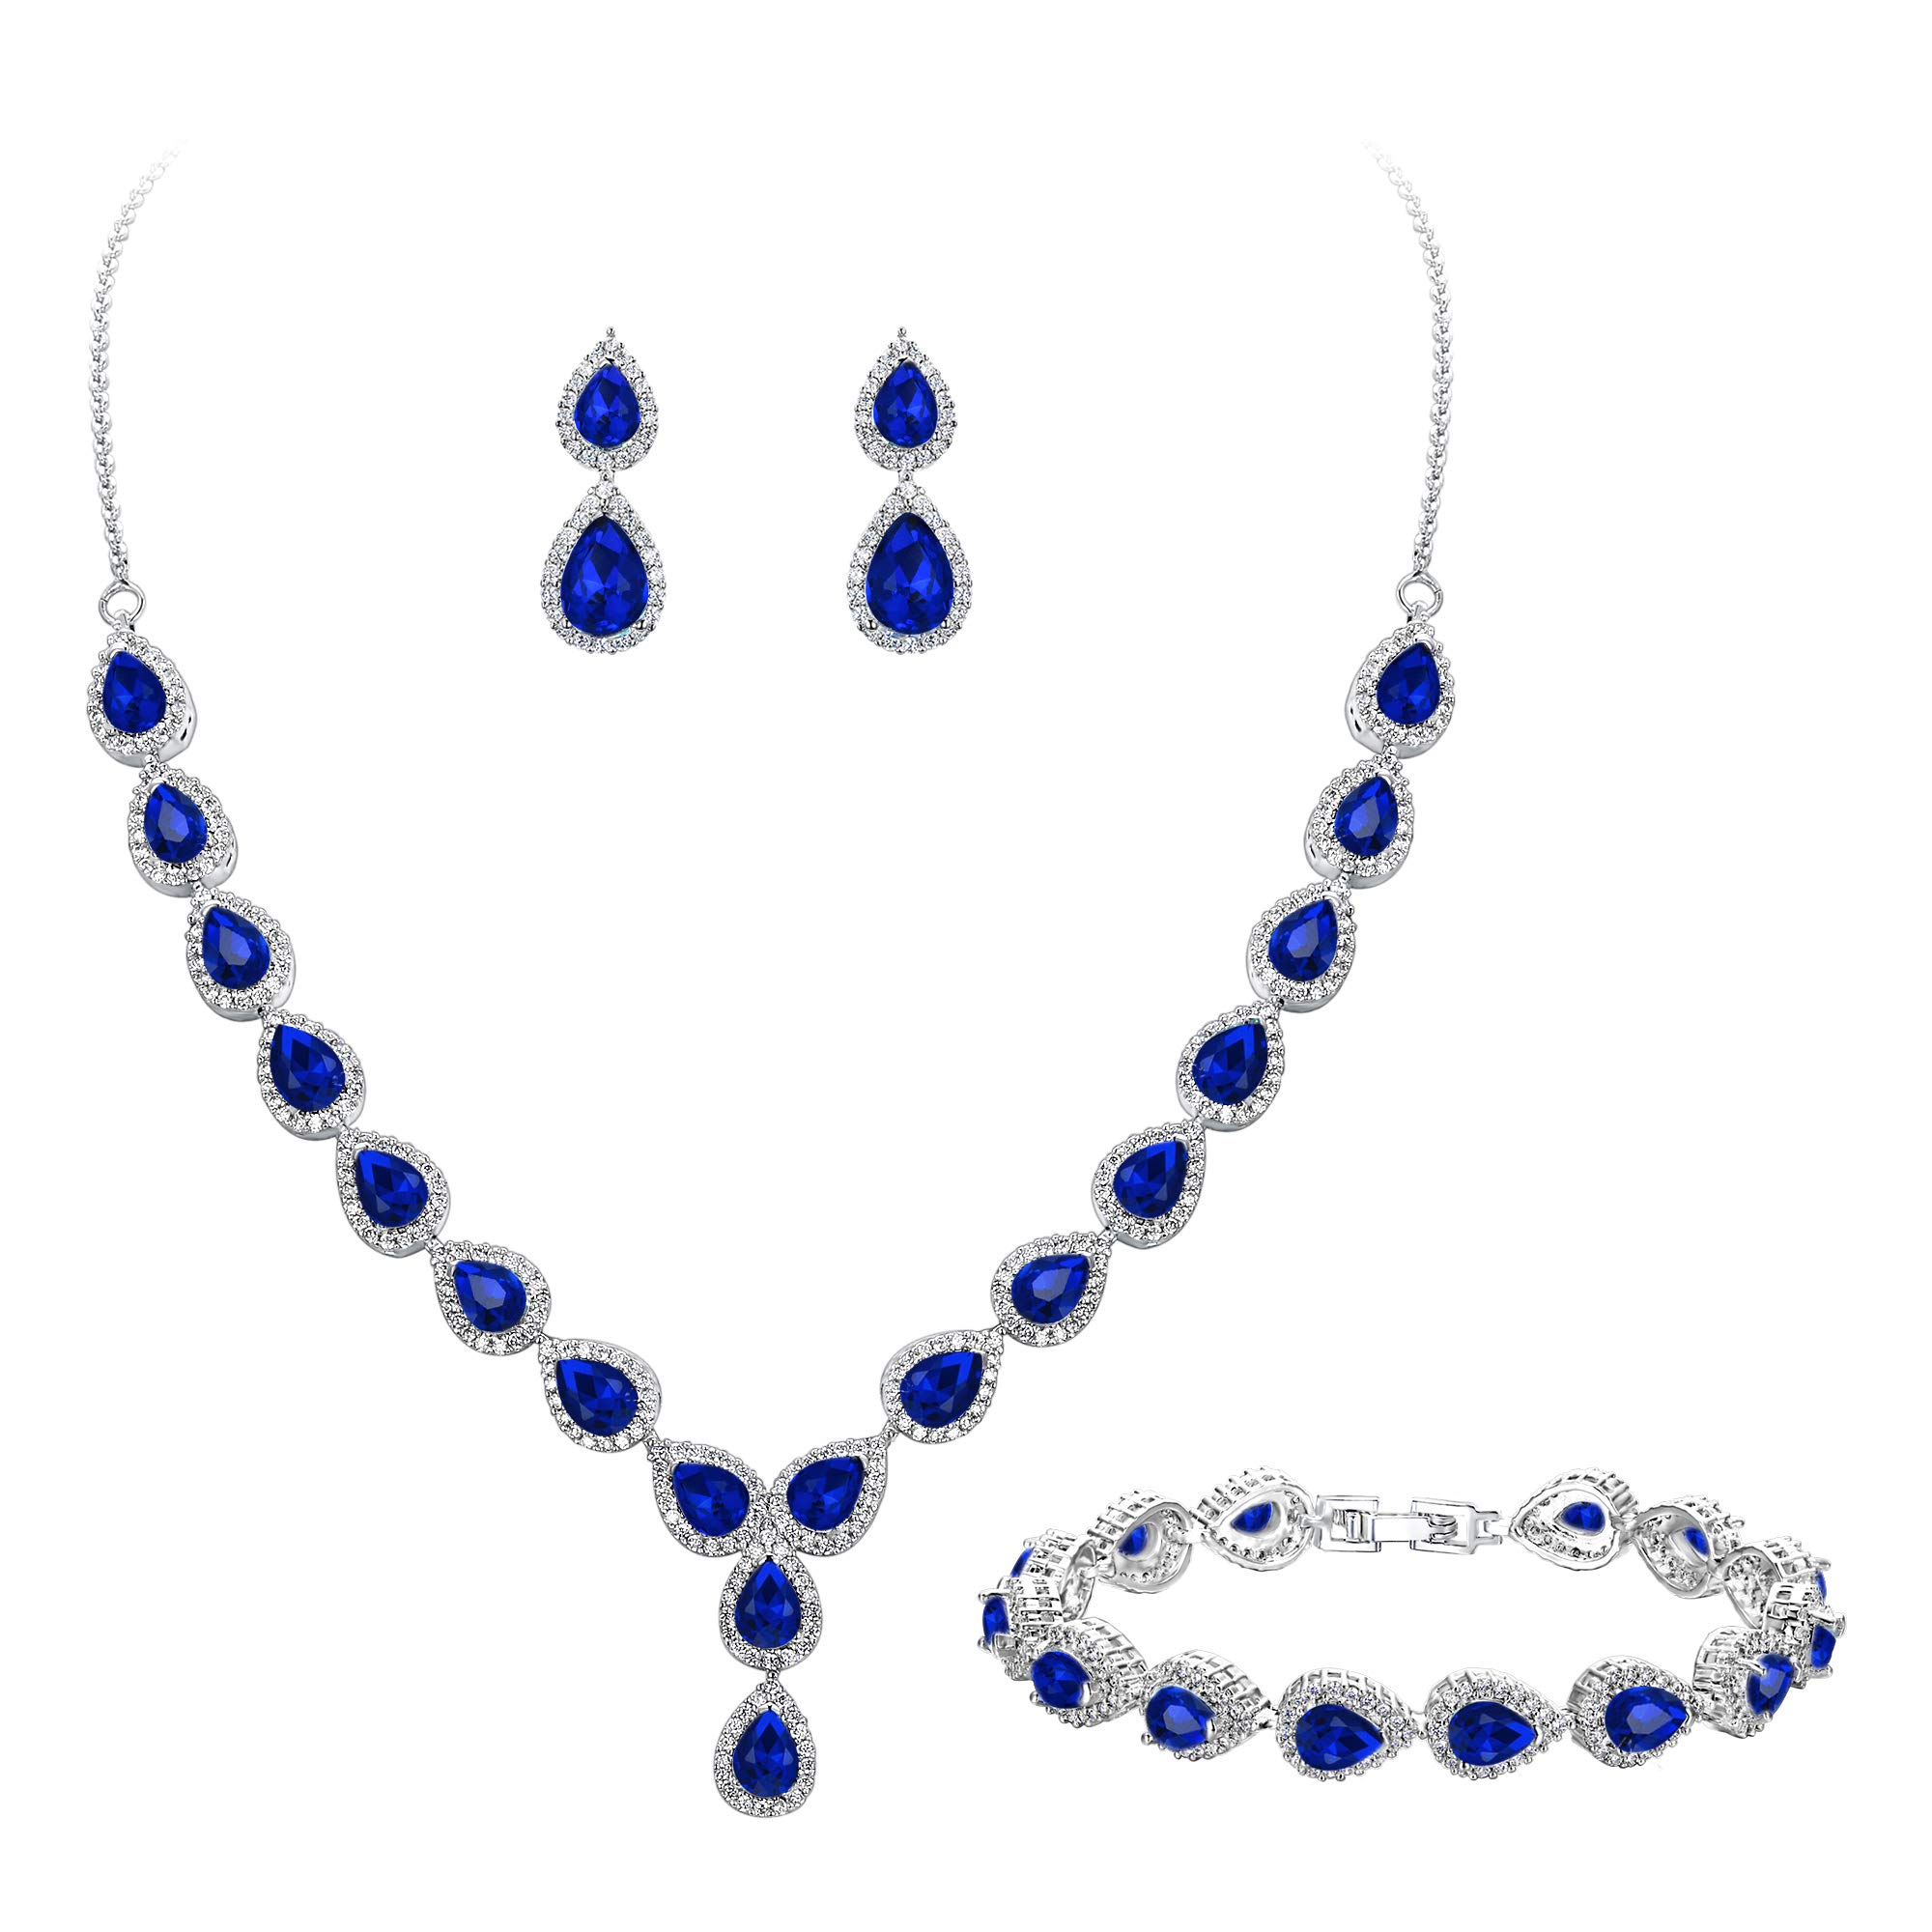 BriLove Women's Wedding Bridal Jewelry Set Y-Necklace Tennis Bracelet Dangle Earrings Set with Teardrop CZ Infinity Figure 8 Sapphire Color Silver-Tone September Birthstone